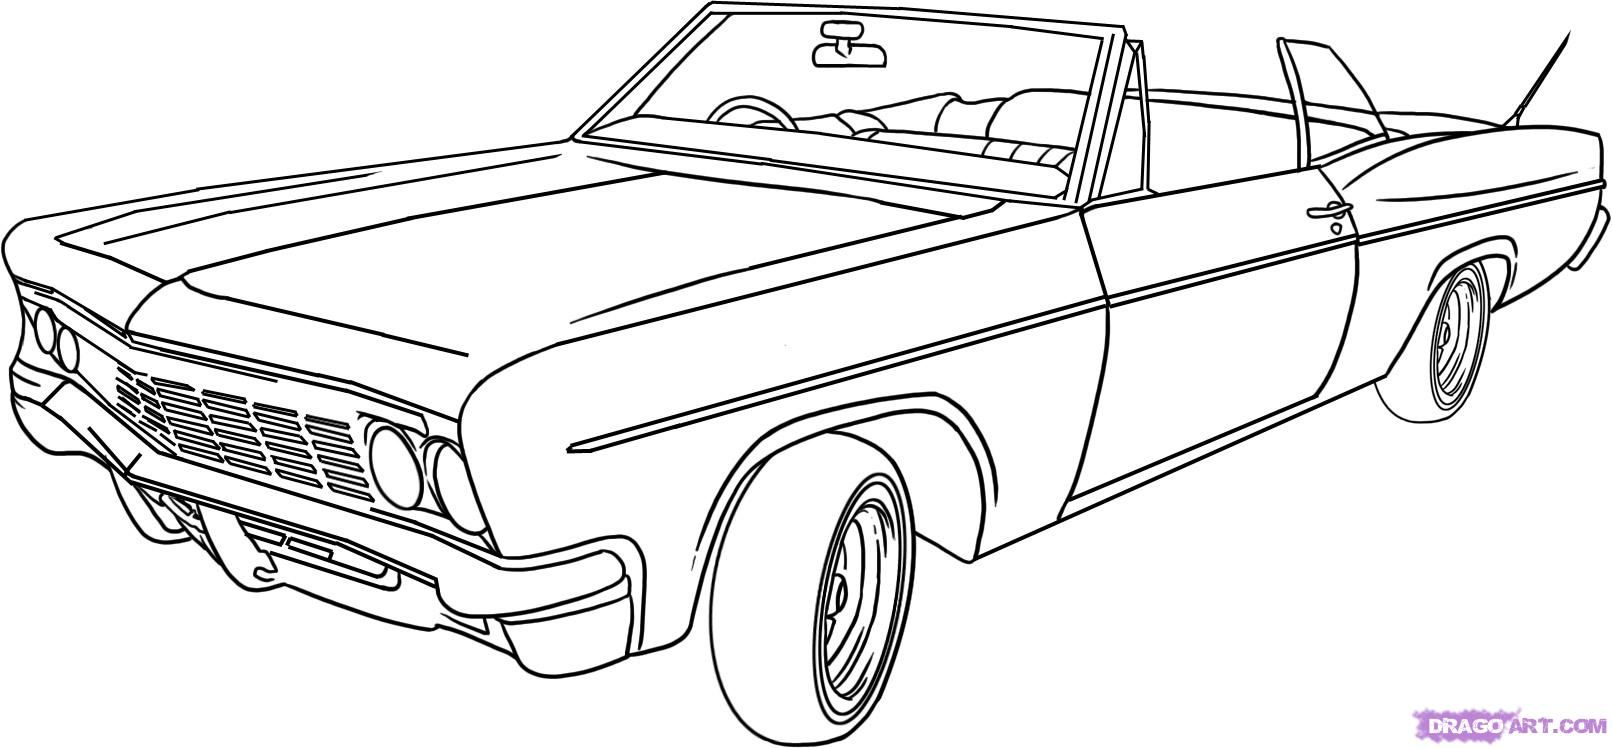 36gj1 Re Building 1972 Ford F100 390 Hands Tore Down further Ferrari 250 Gt Coupe Wiring Diagram together with Classic Car Coloring Pages besides SearchResults likewise 55 Chevrolet Wiring Diagram. on 1955 pontiac police car